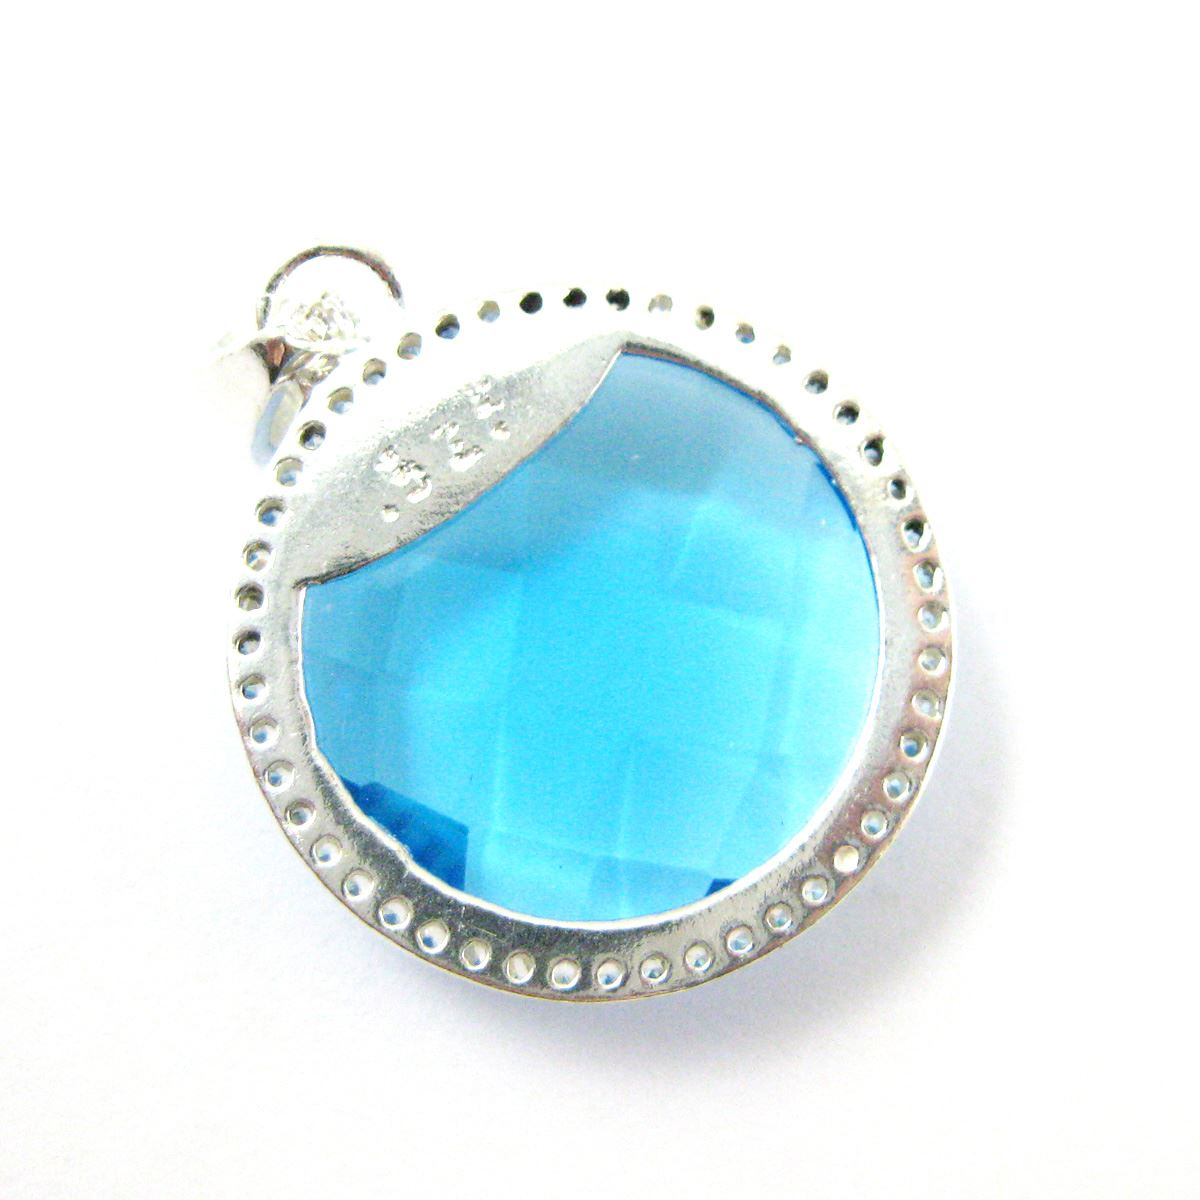 Sterling Silver Pave Bezel Gemstone Pendant - Cubic Zirconia Pave Setting -  Round Faceted Stone-Blue Topaz Quartz- 21mm